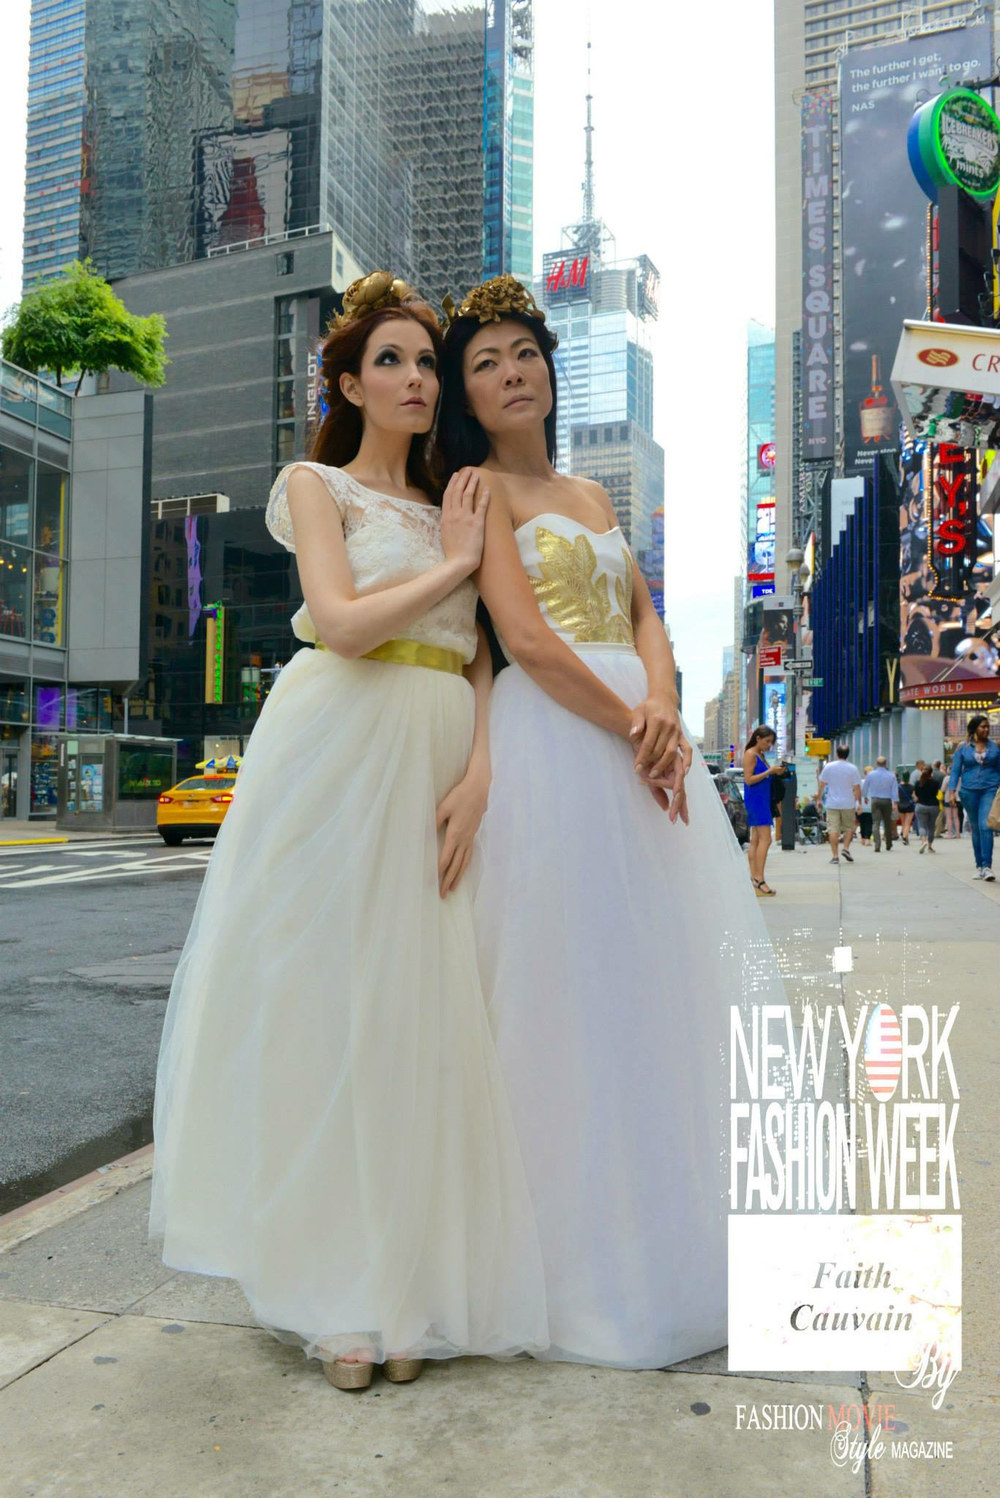 Times Square Duo Photo Shoot (Angels) September 2015 Professional Photo (2).jpg